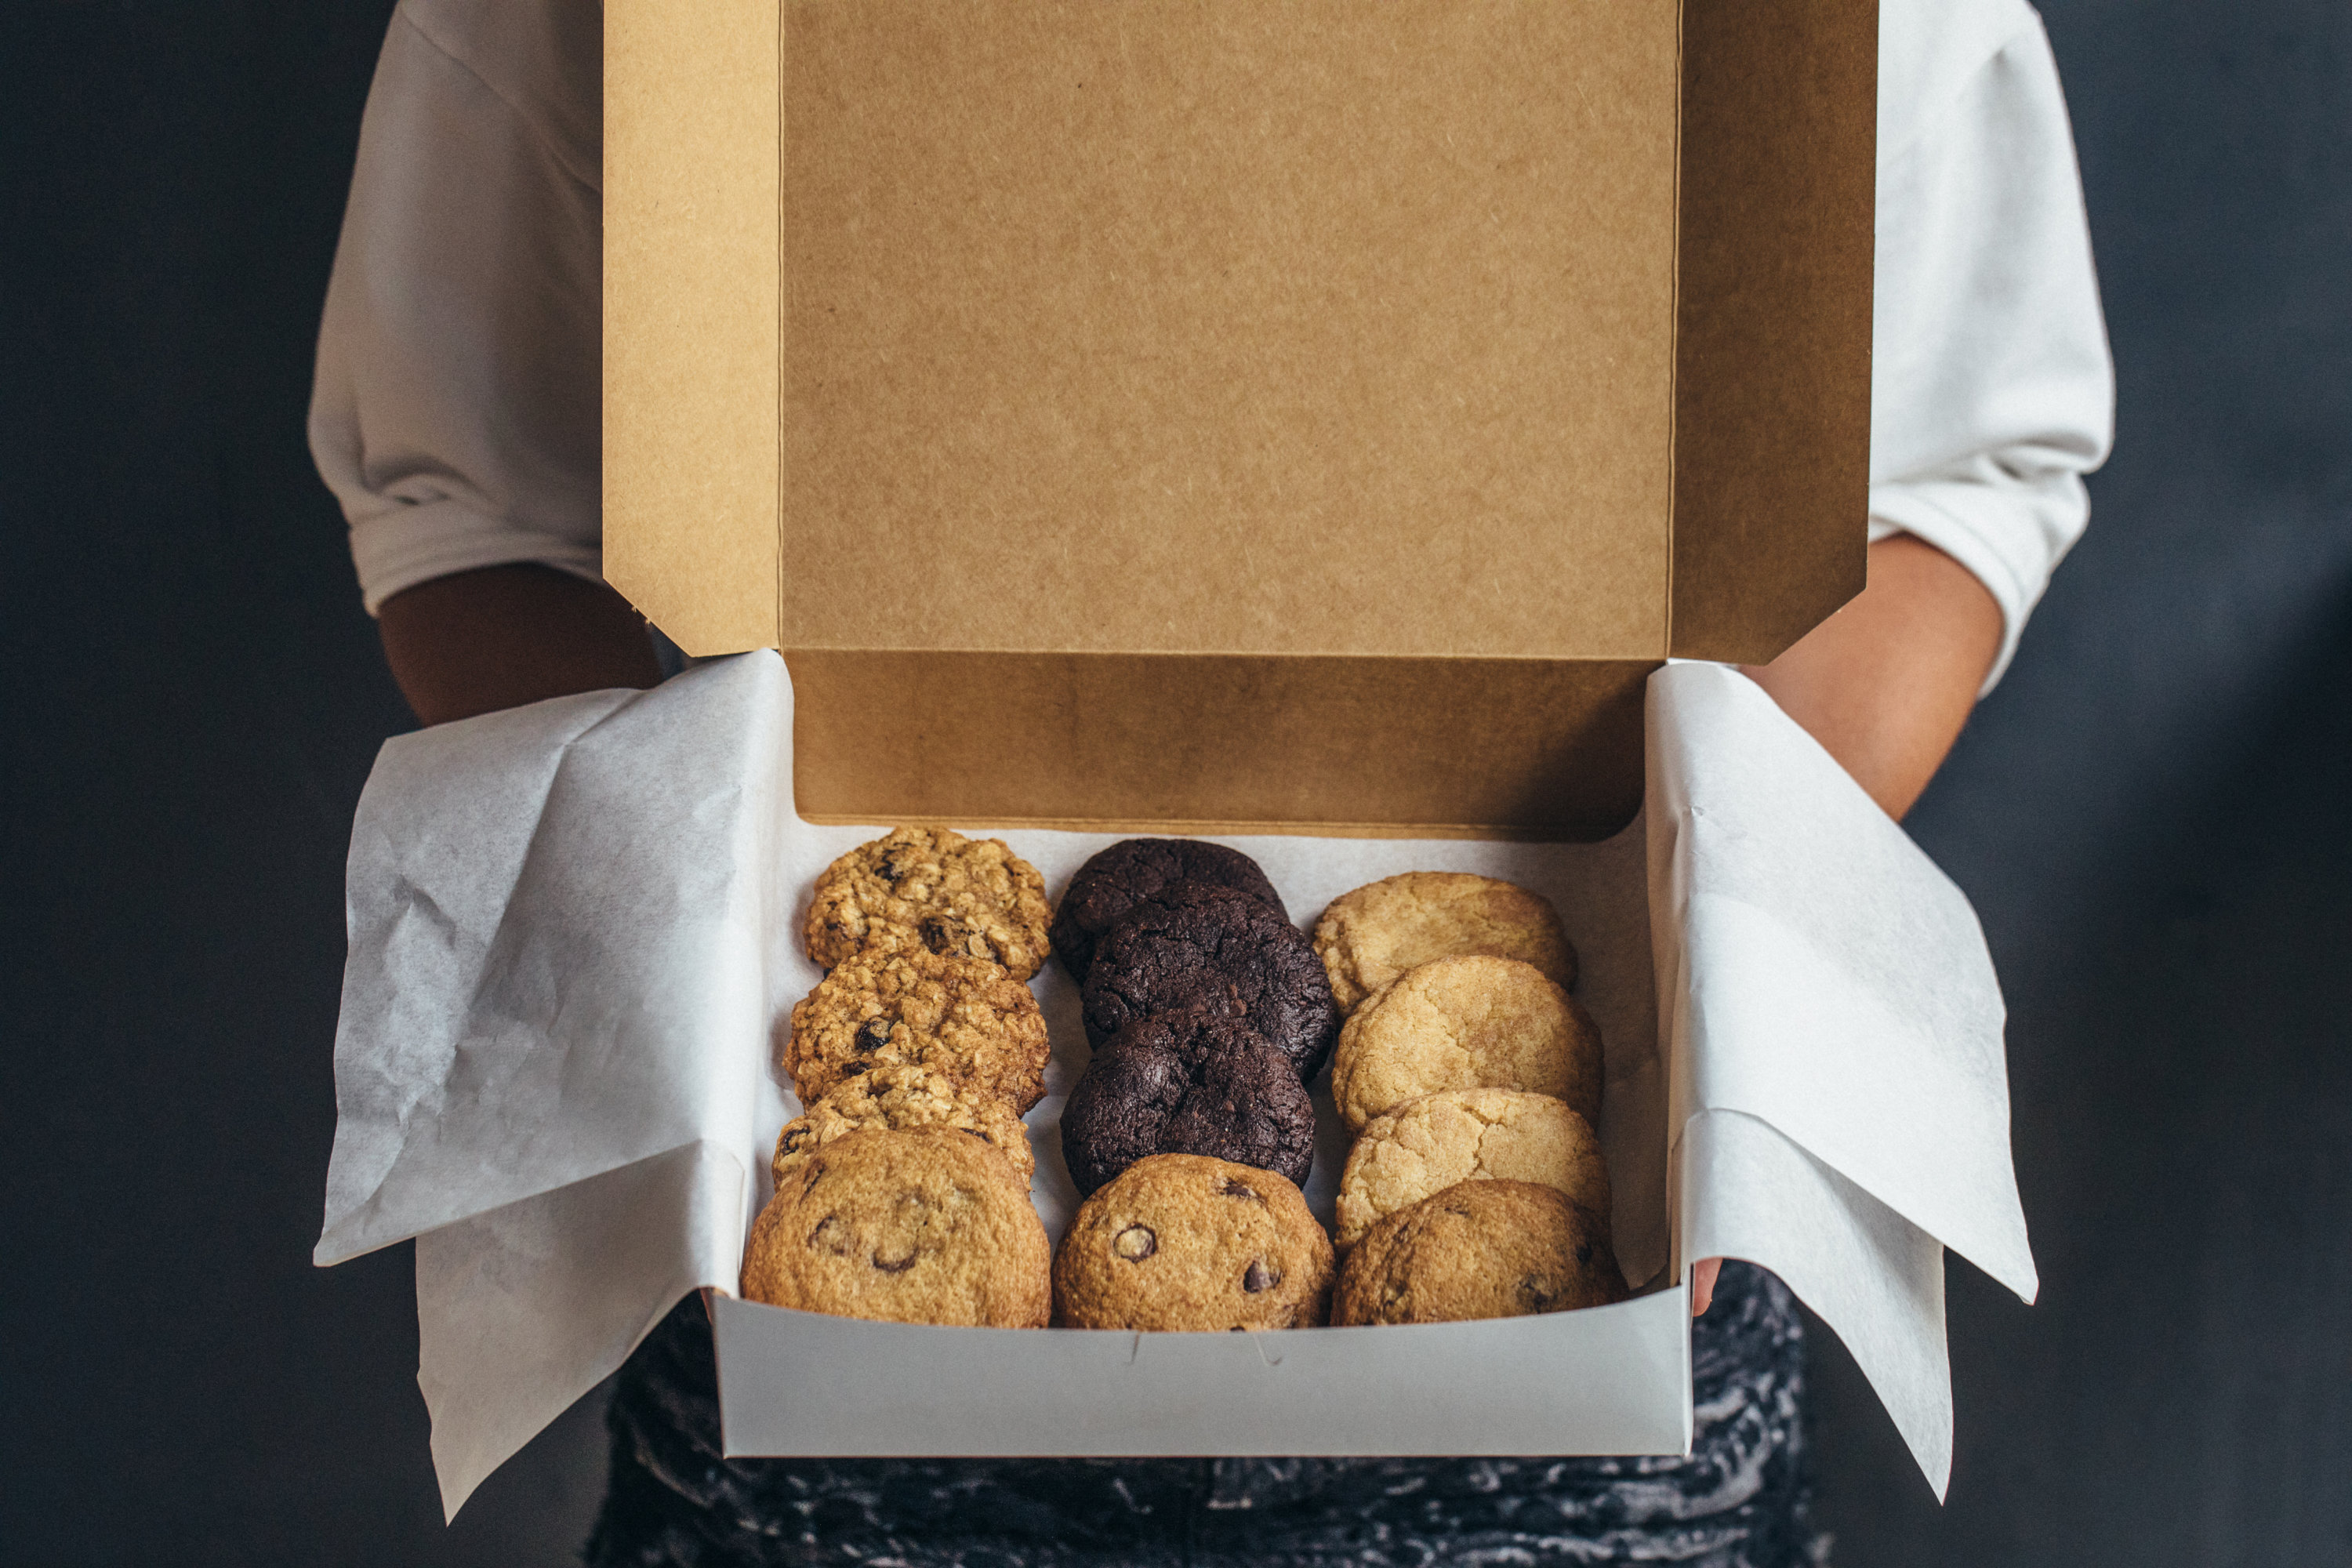 Assorted cookies from Baked and Wired. Photo by Sarah Culver.